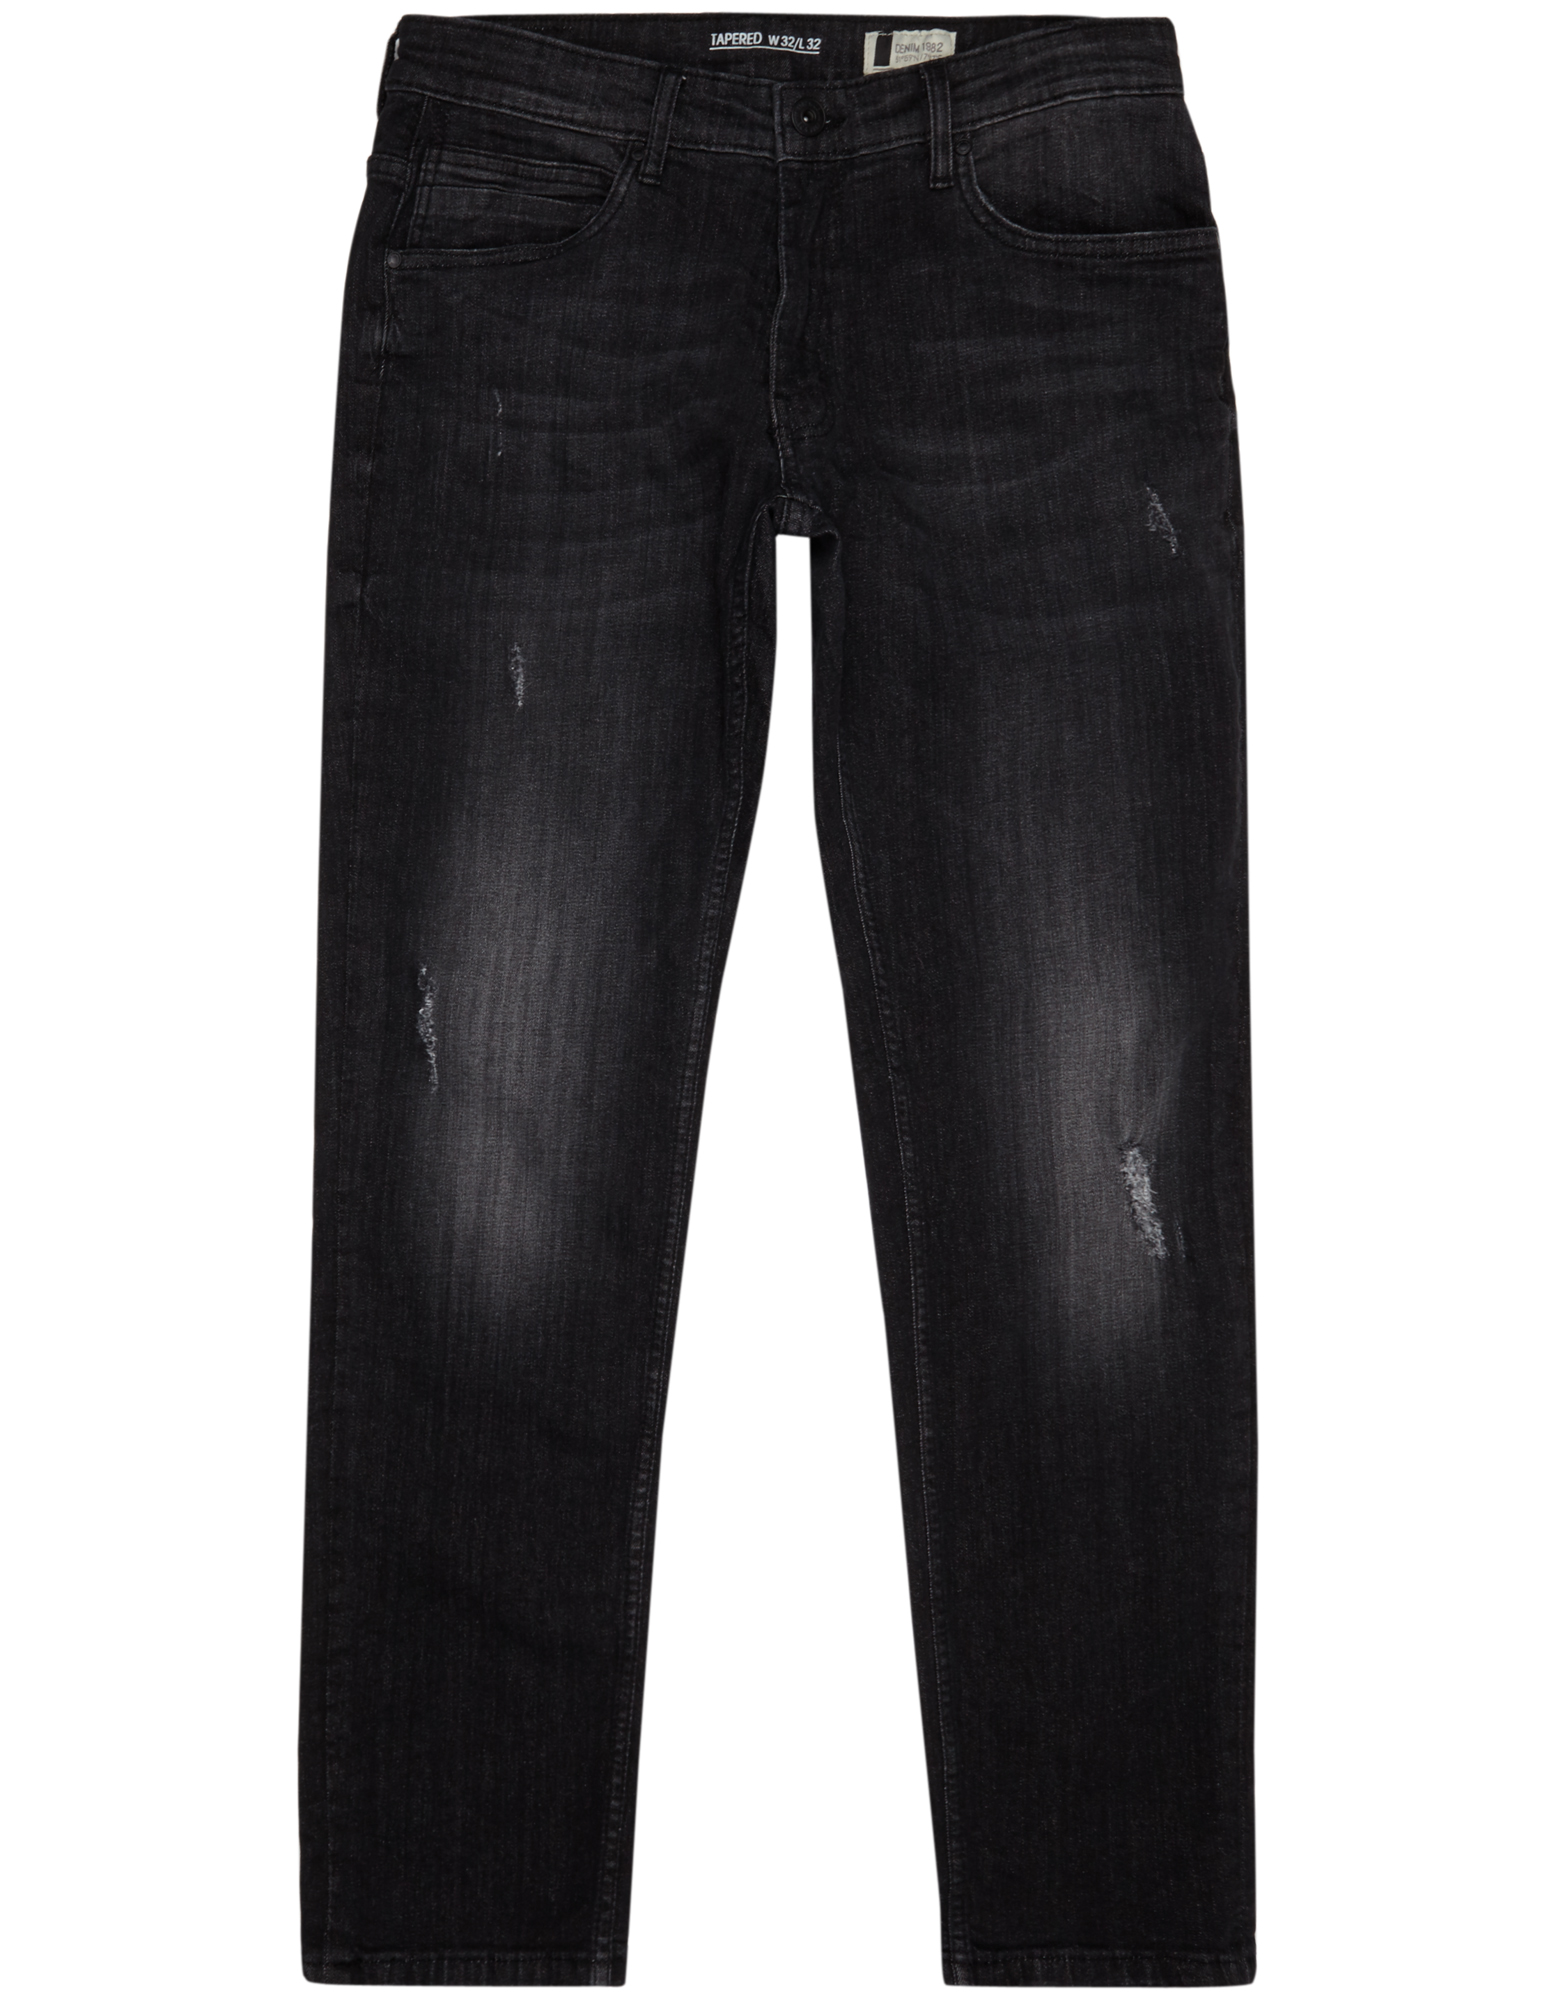 Herren Tapered Fit Jeans im Used Look blau,rot | 81458169940401